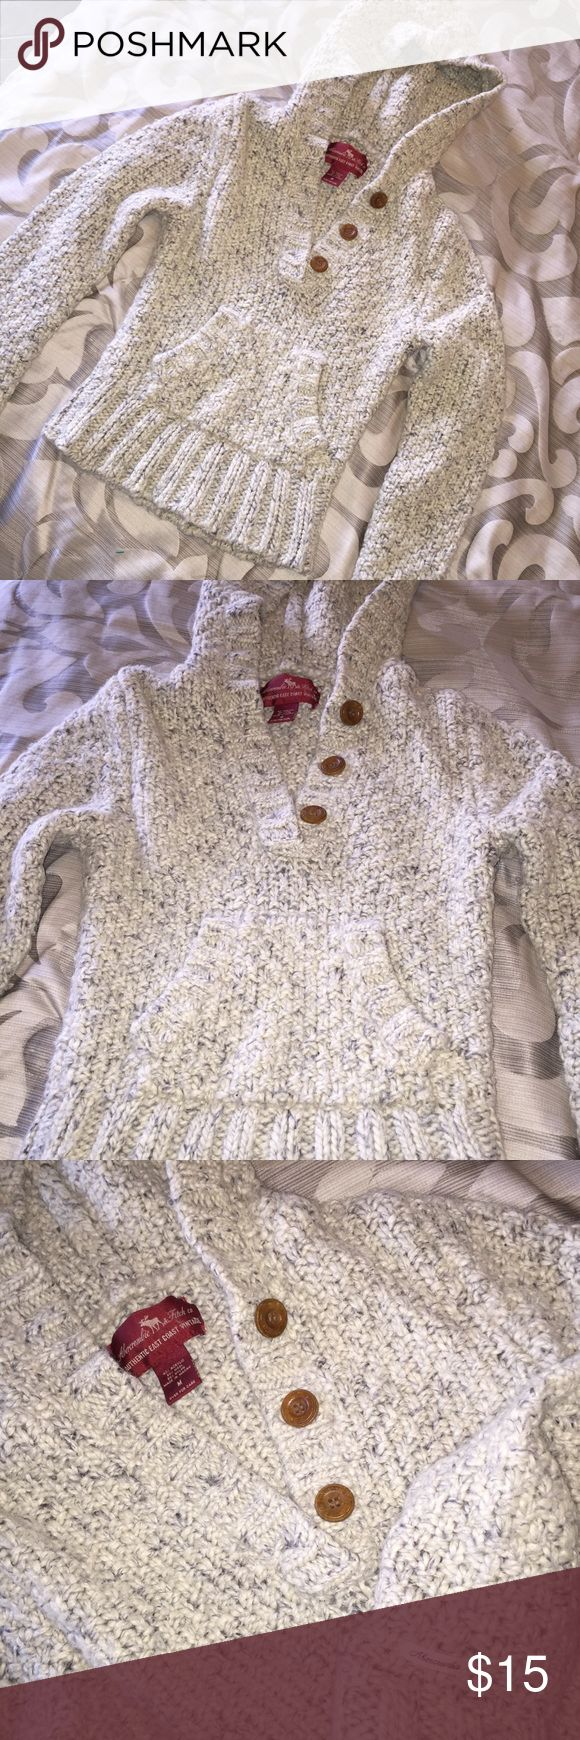 Abercrombie & Fitch Sweater Great condition. Says size M, but it is short. Abercrombie & Fitch Tops